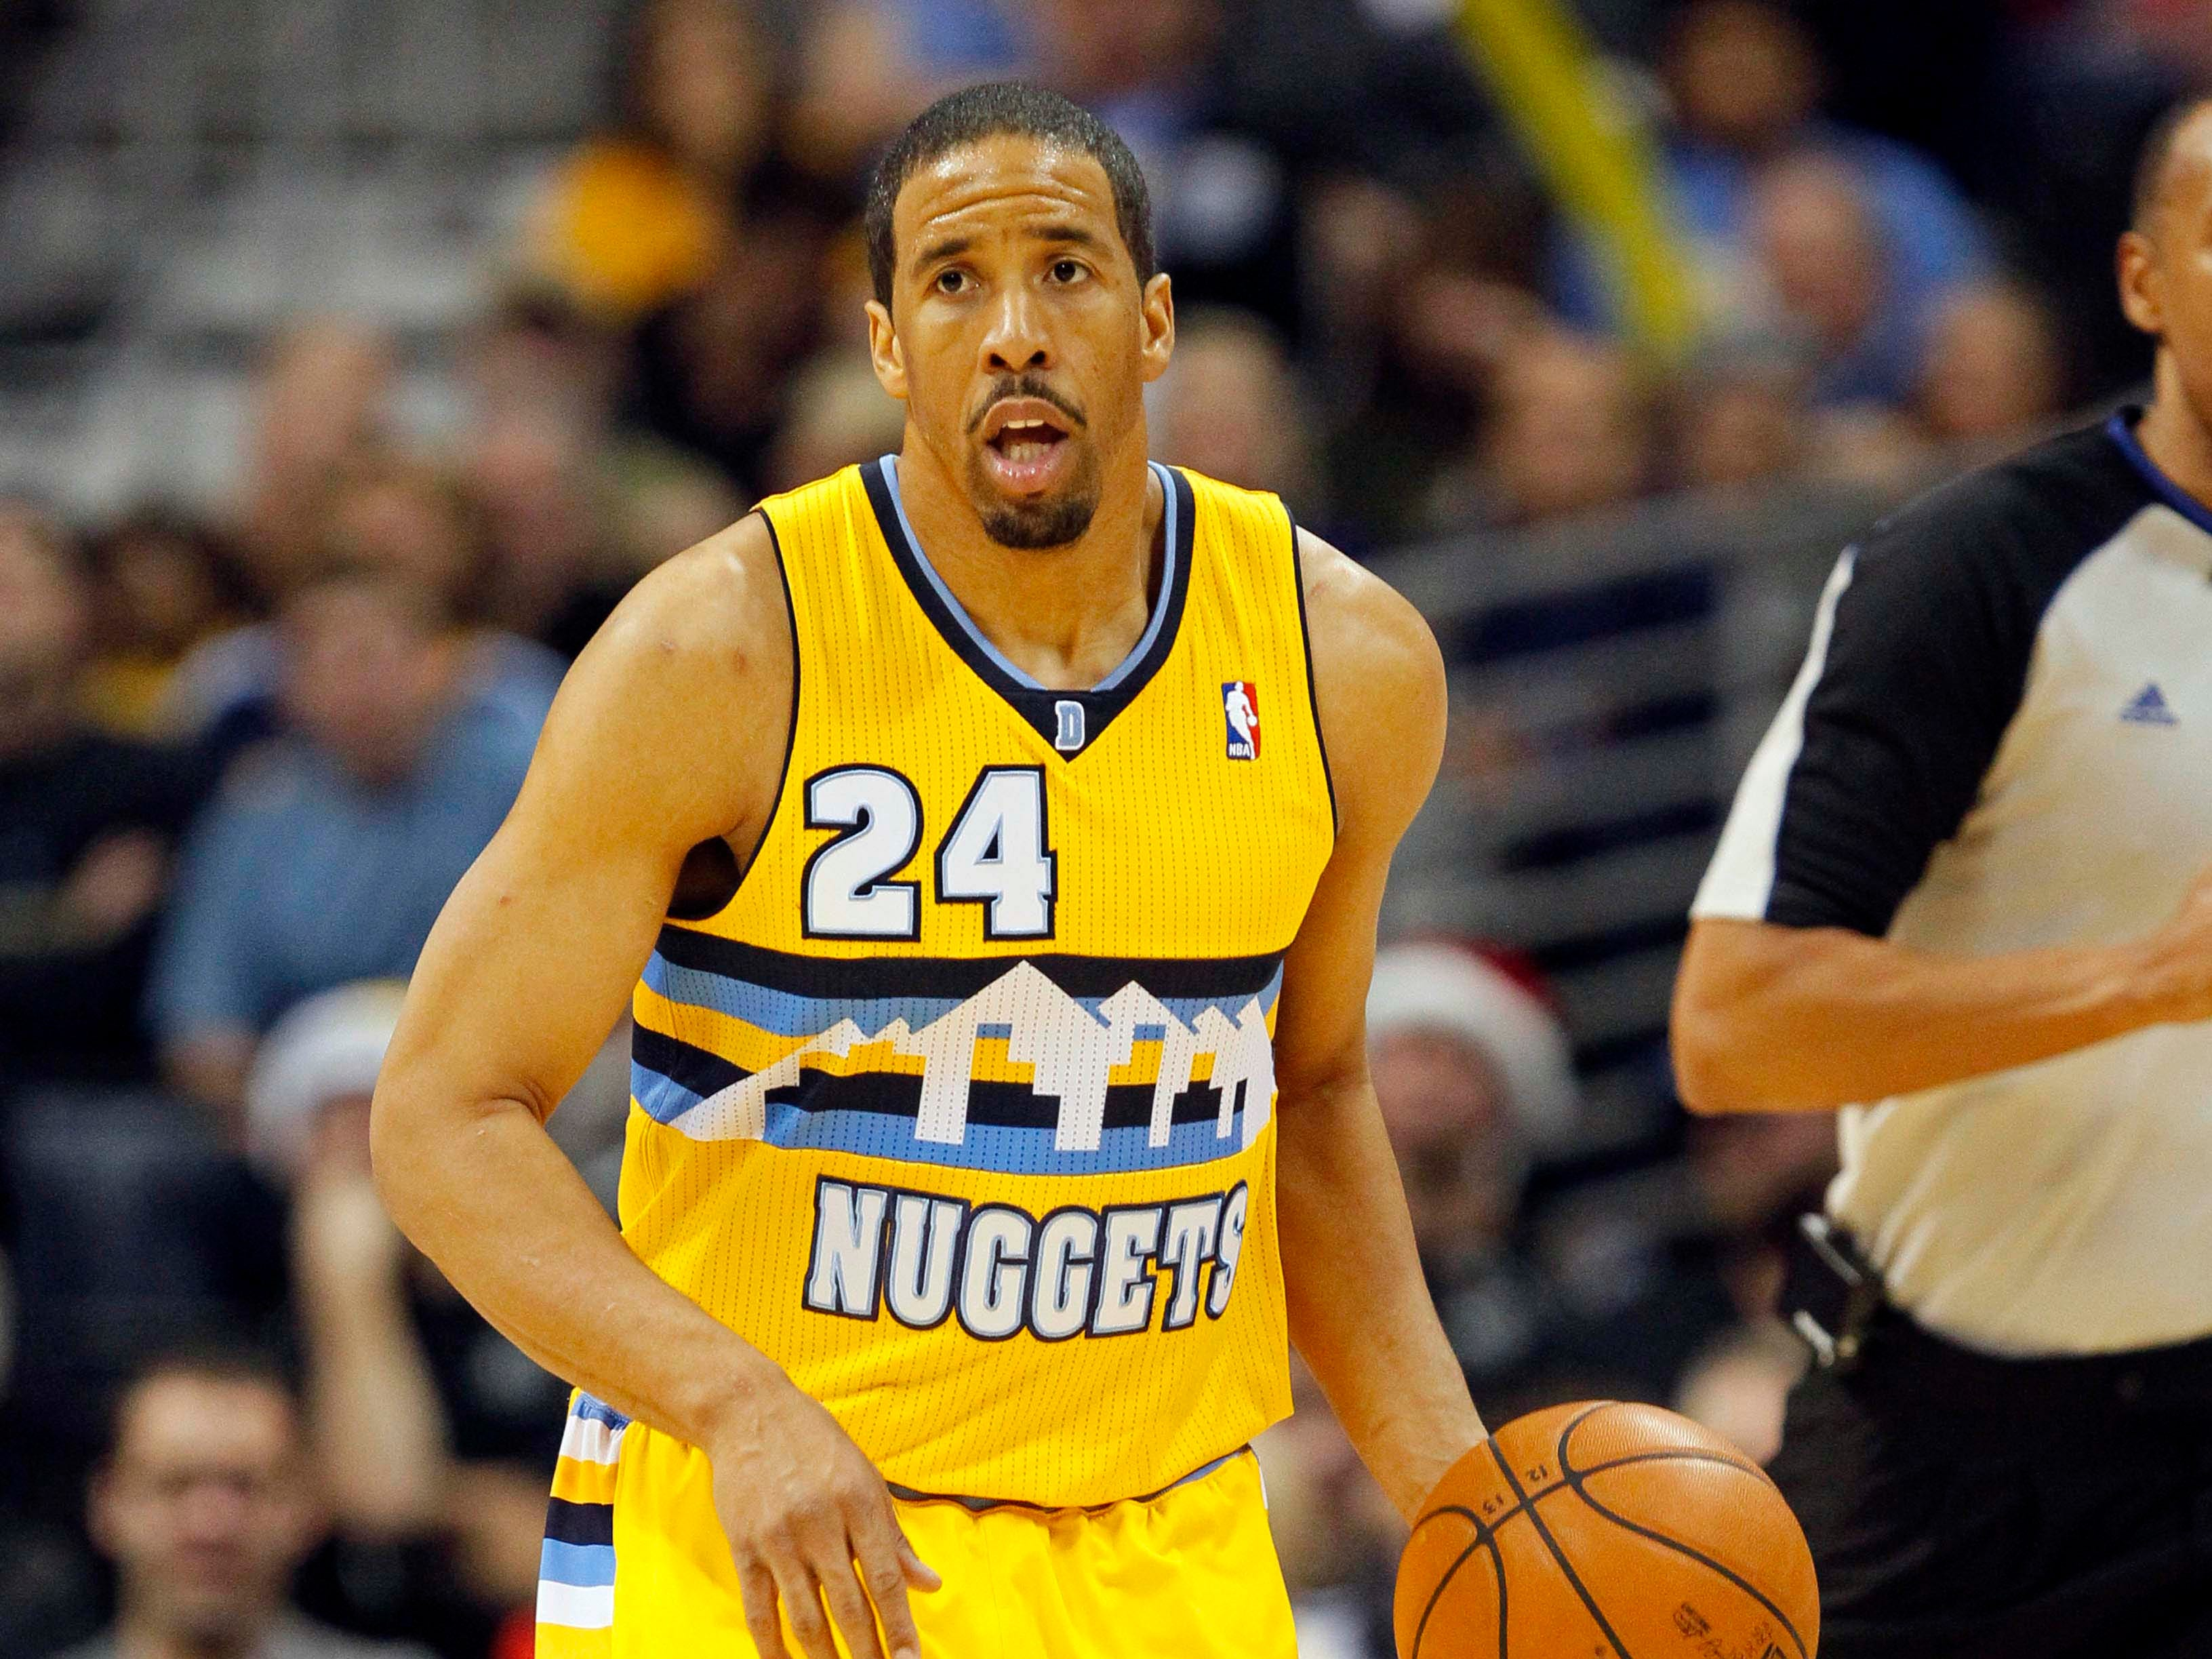 Denver Nuggets point guard Andre Miller's 2012 uniform shows off a mile-high mountainscape.